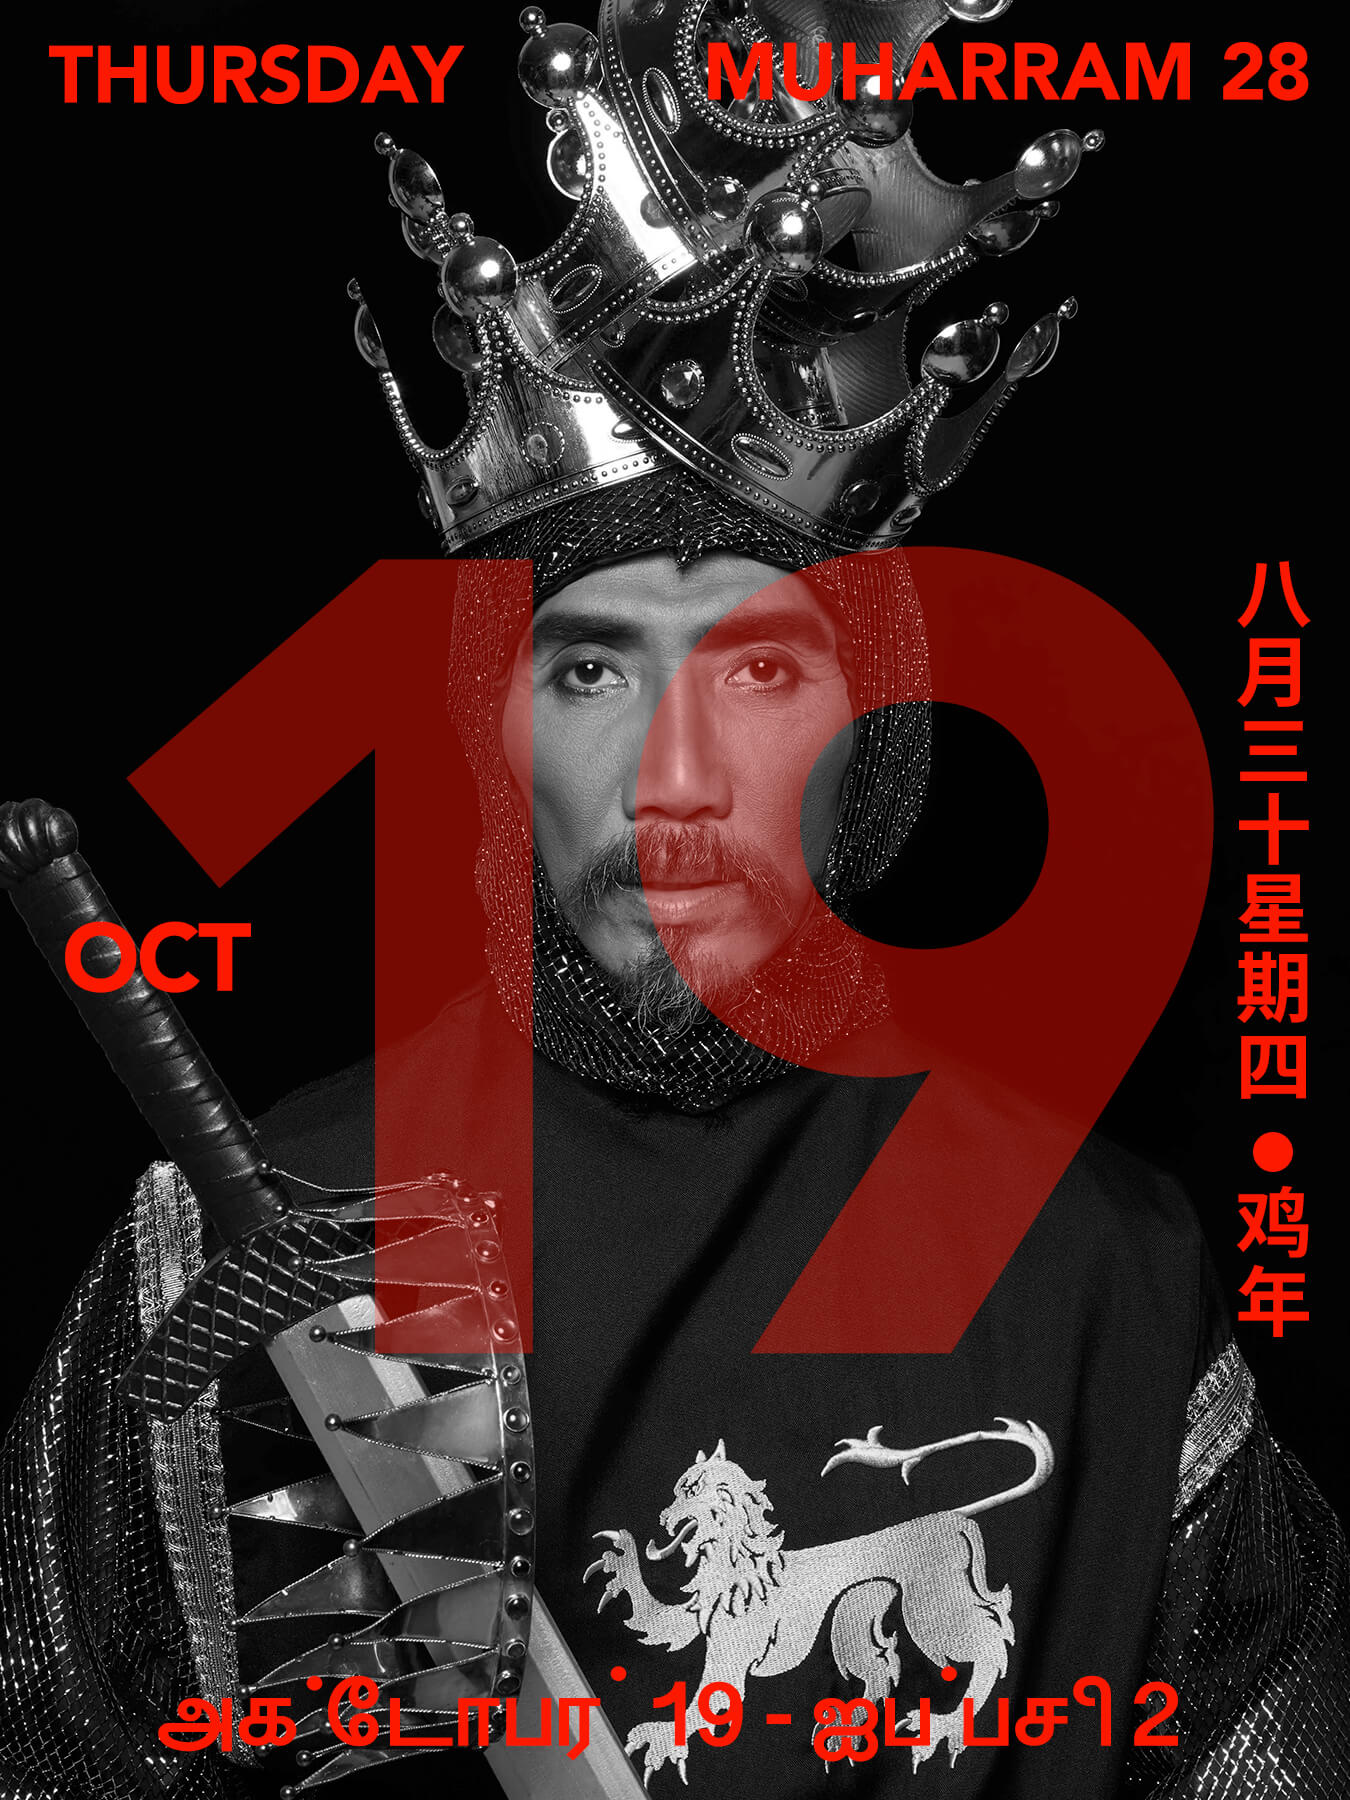 19 Oct 2017 Derong is photographed as King Arthur